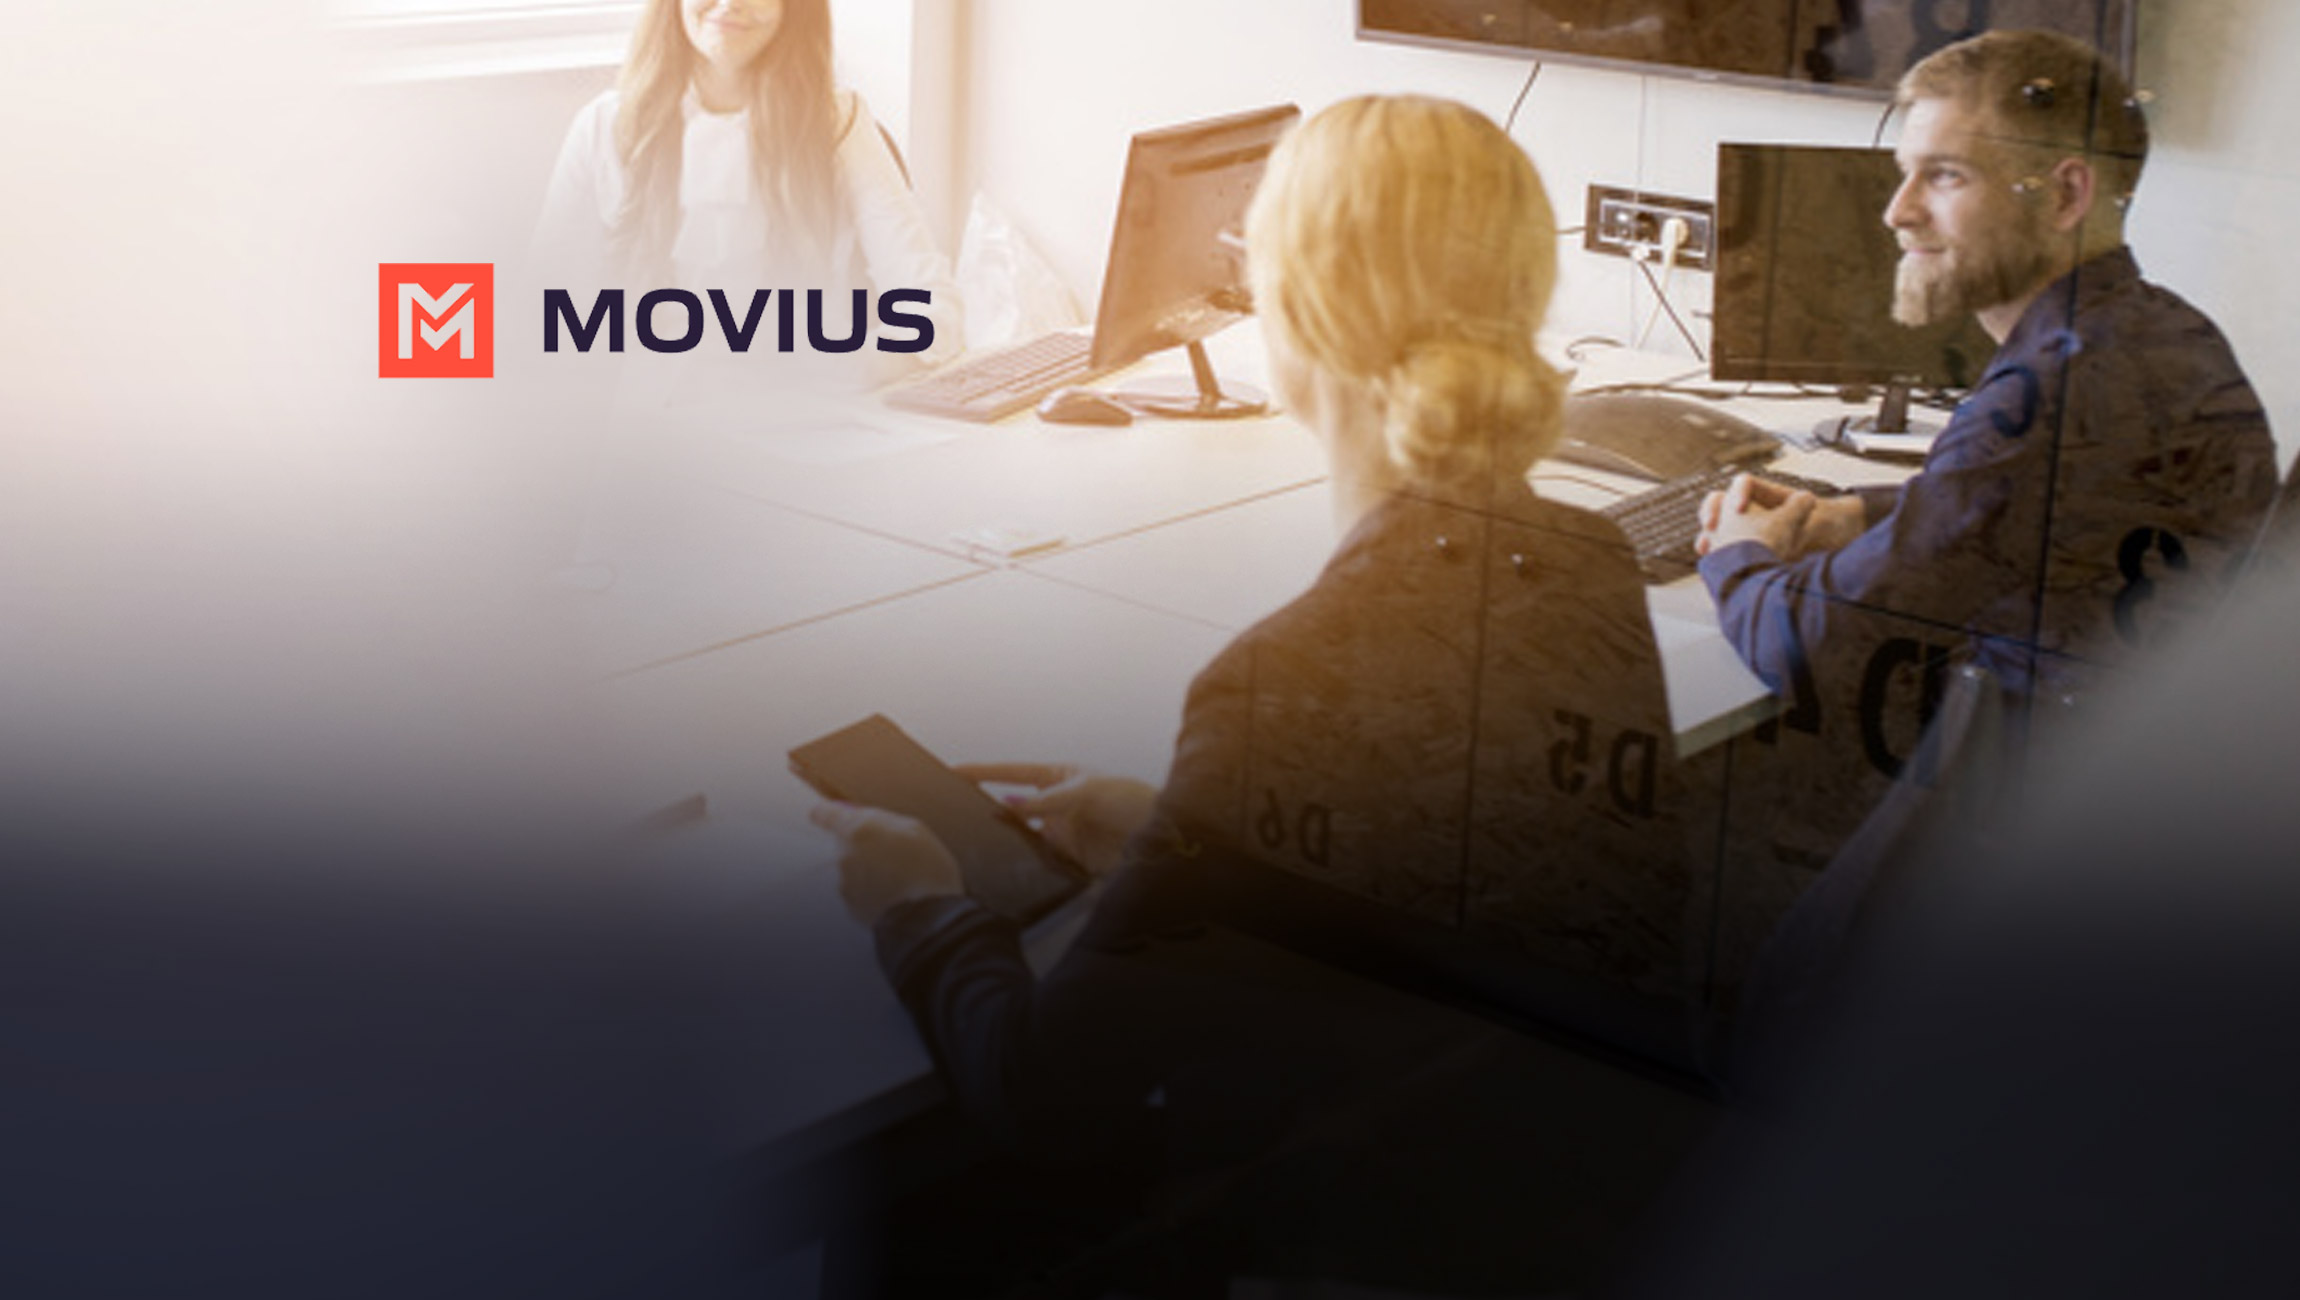 Movius Announces MultiLine for Salesforce on Salesforce AppExchange, the World's Leading Enterprise Cloud Marketplace